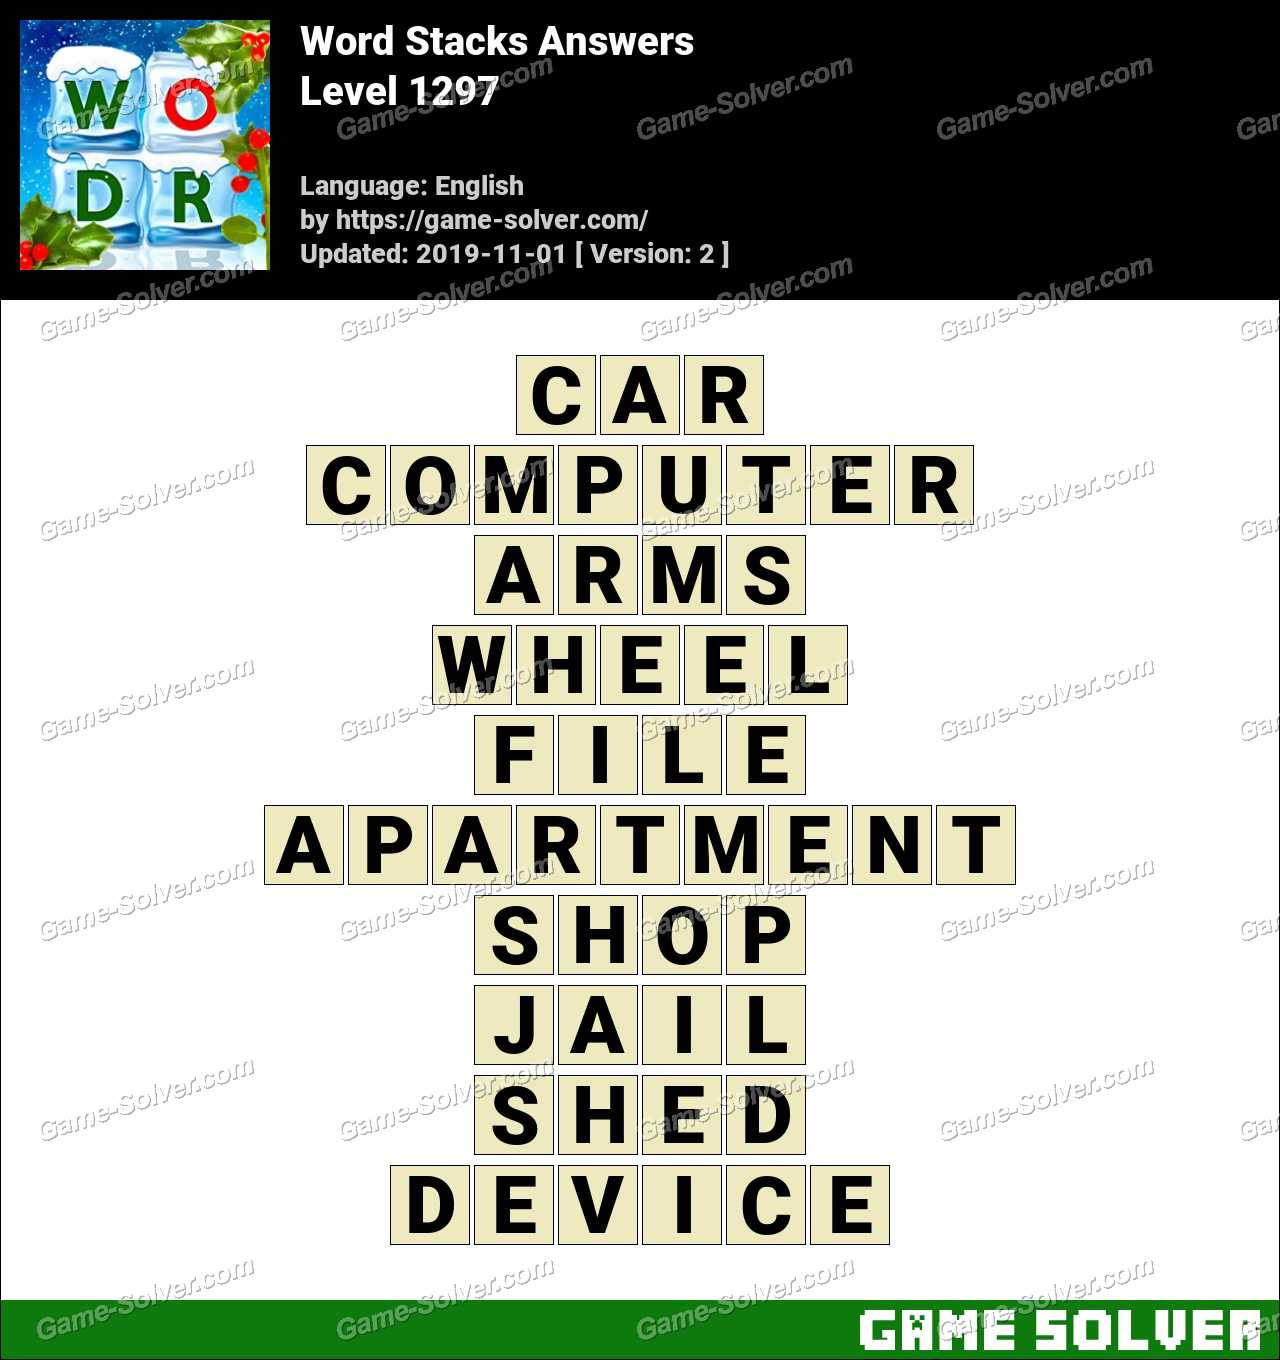 Word Stacks Level 1297 Answers